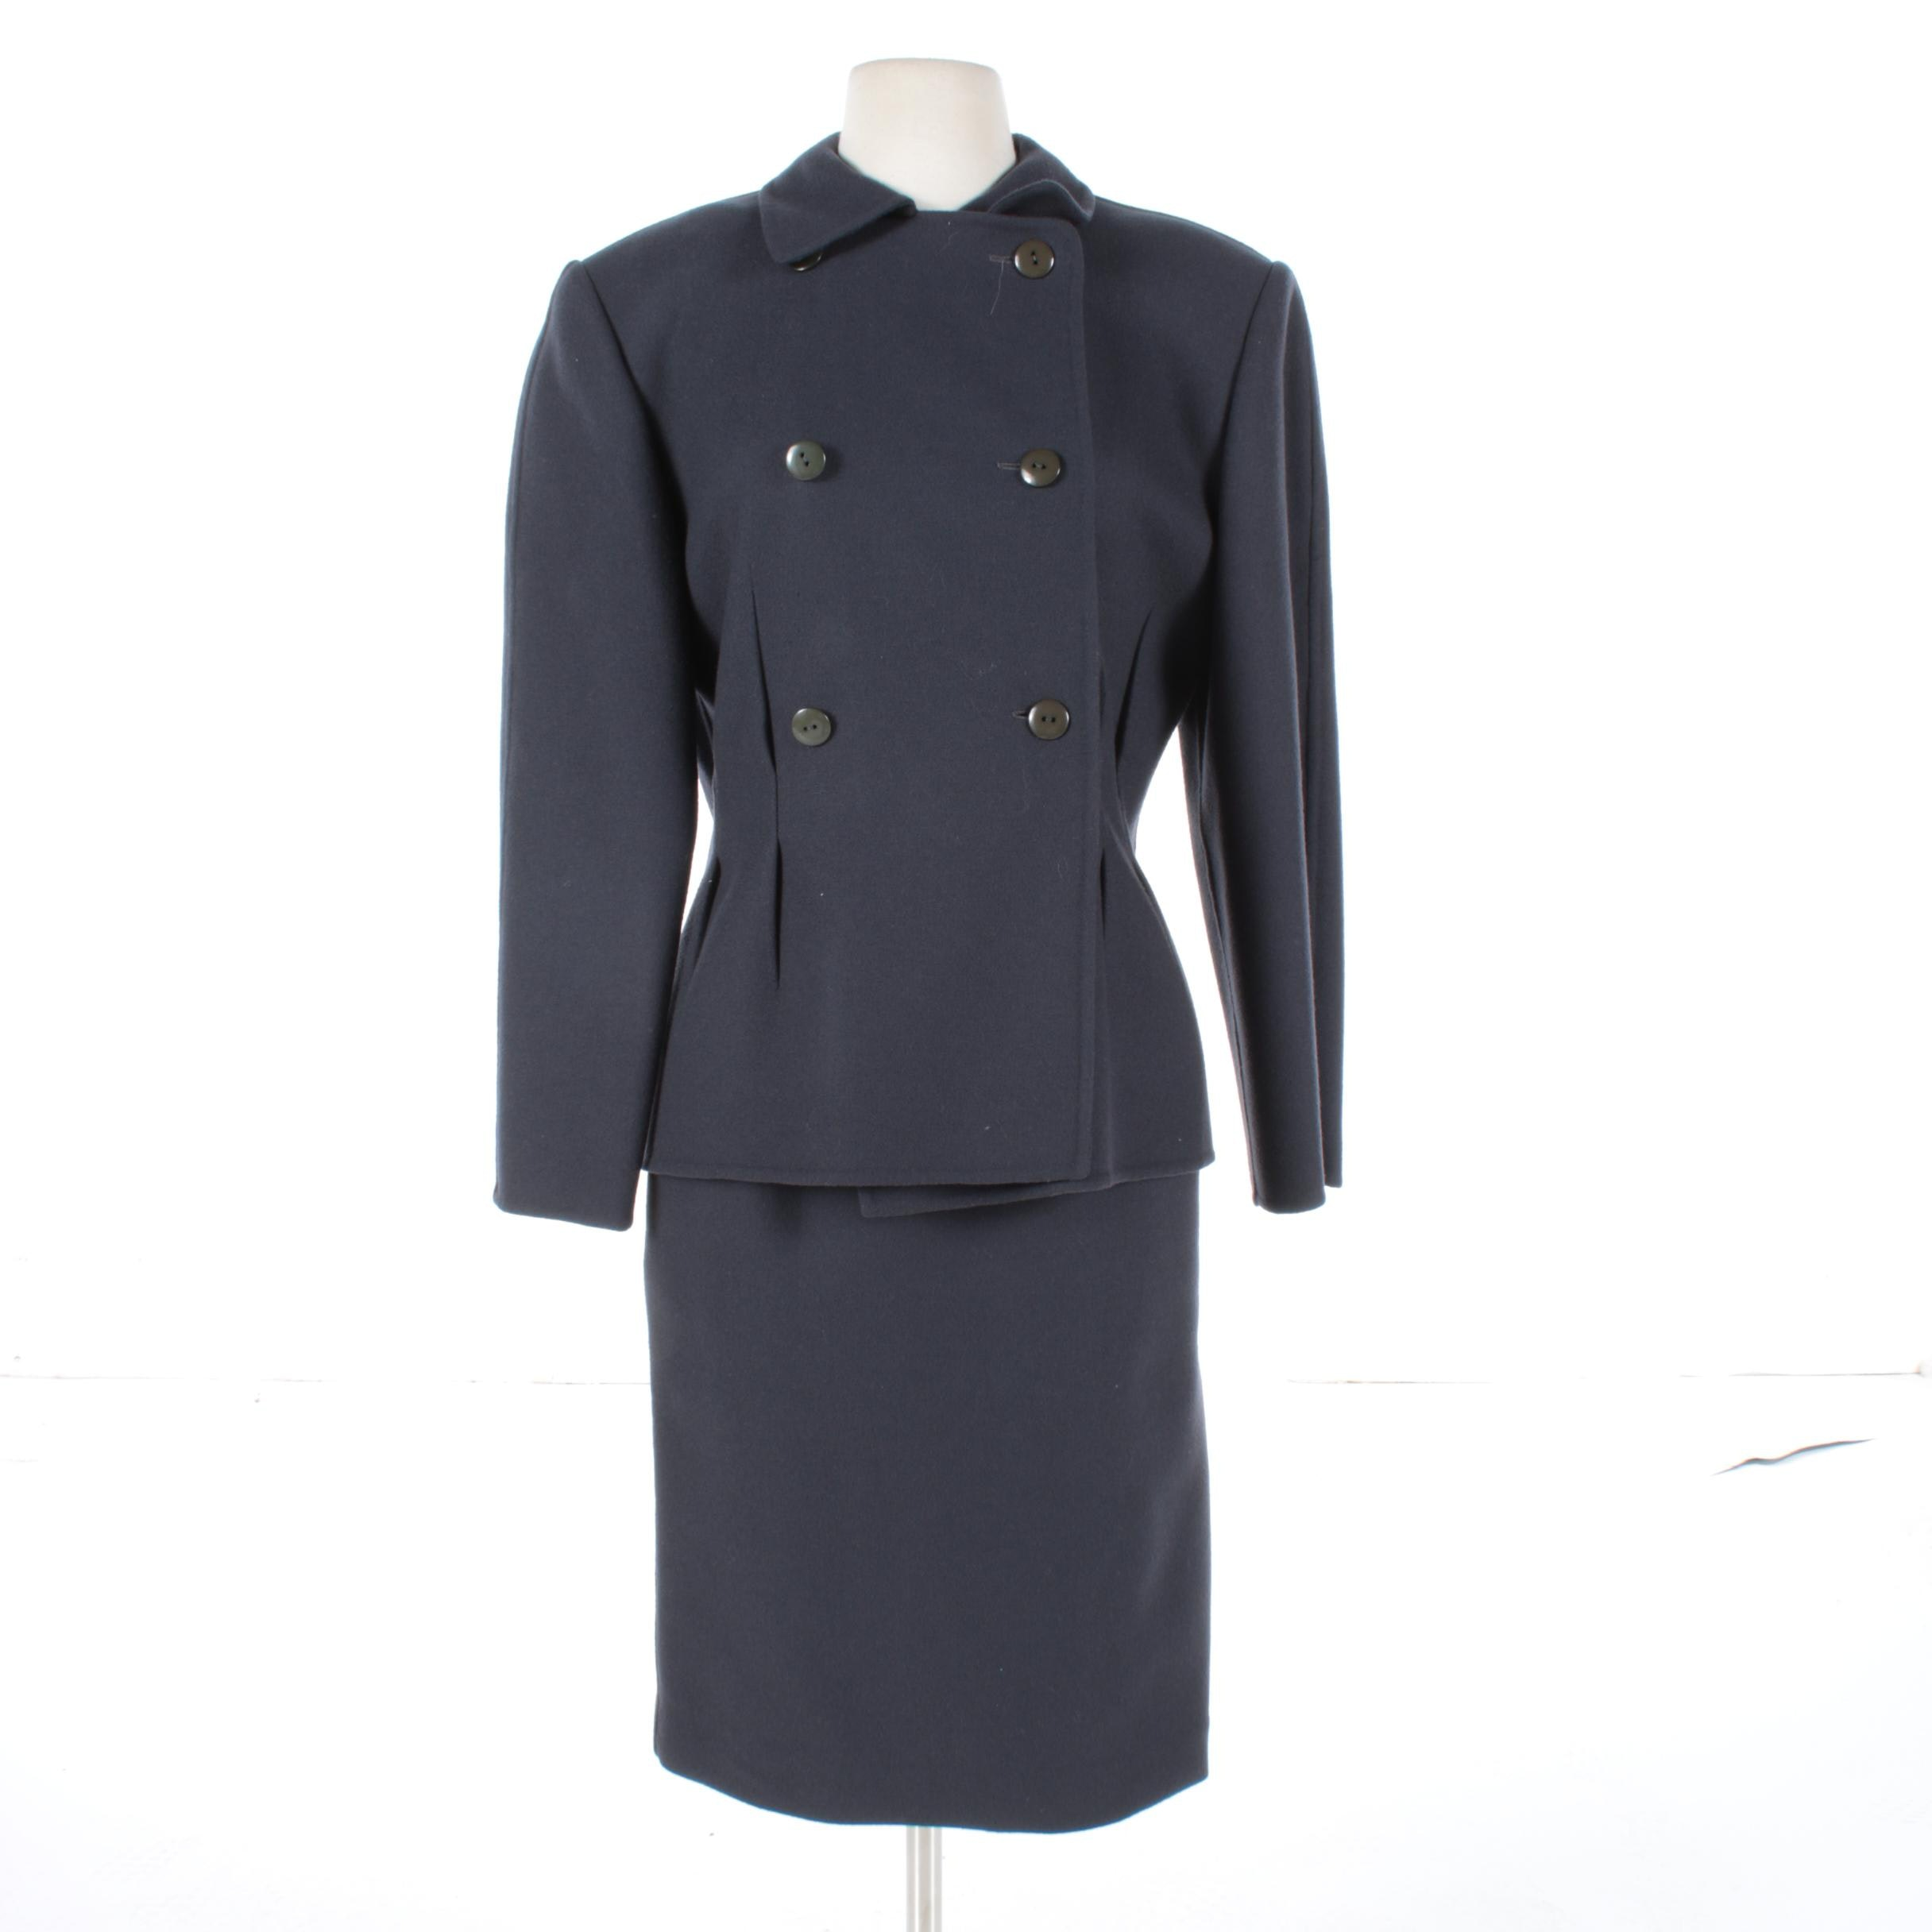 Salvatore Ferragamo Double-Breasted Wool Skirt Suit